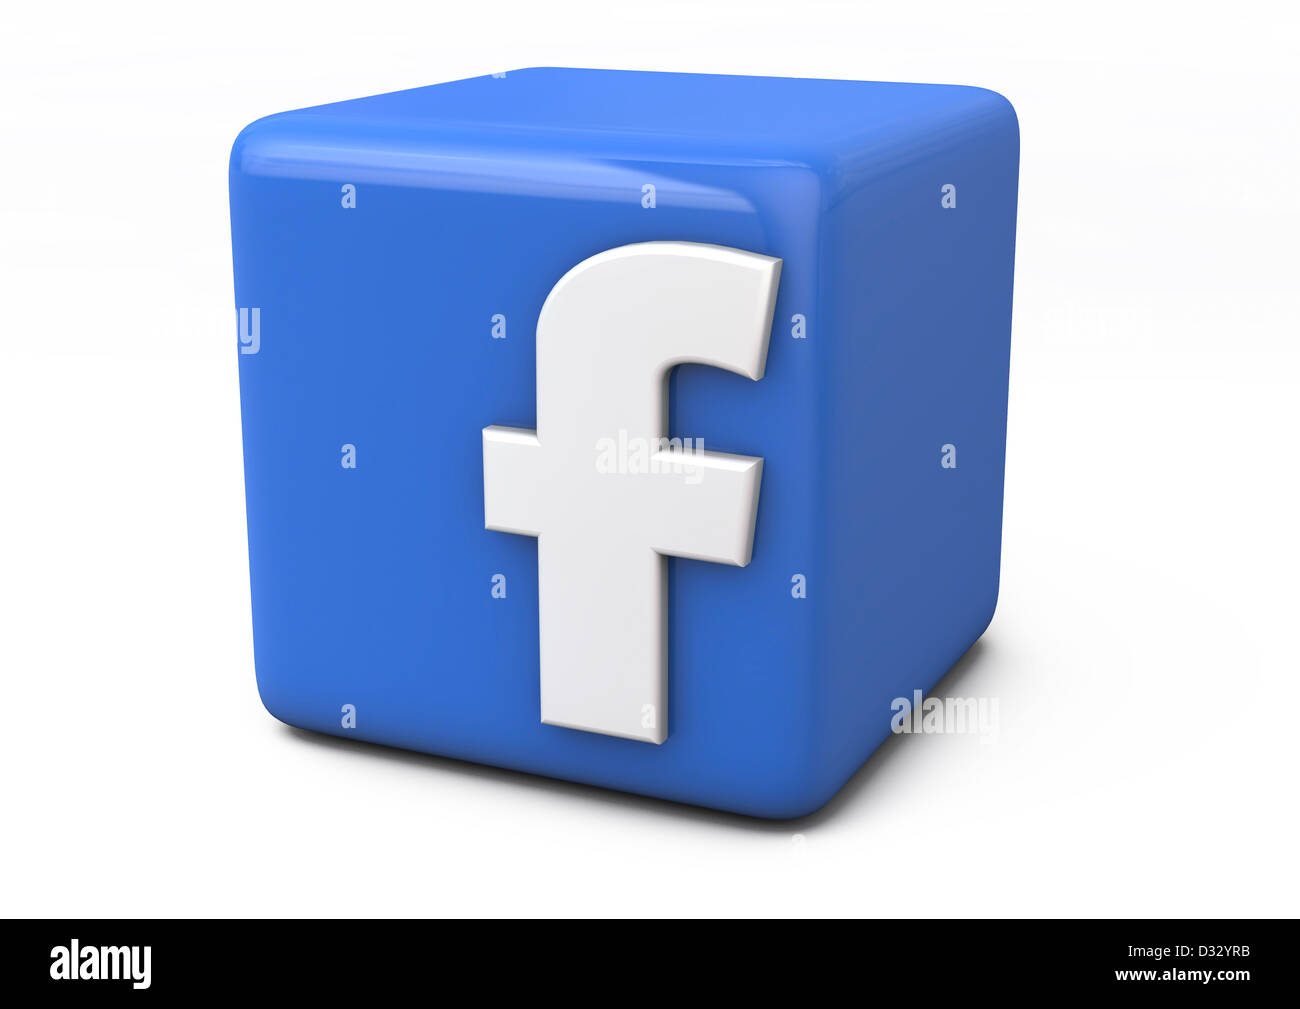 3d render of a facebook logo represented as a blue cube